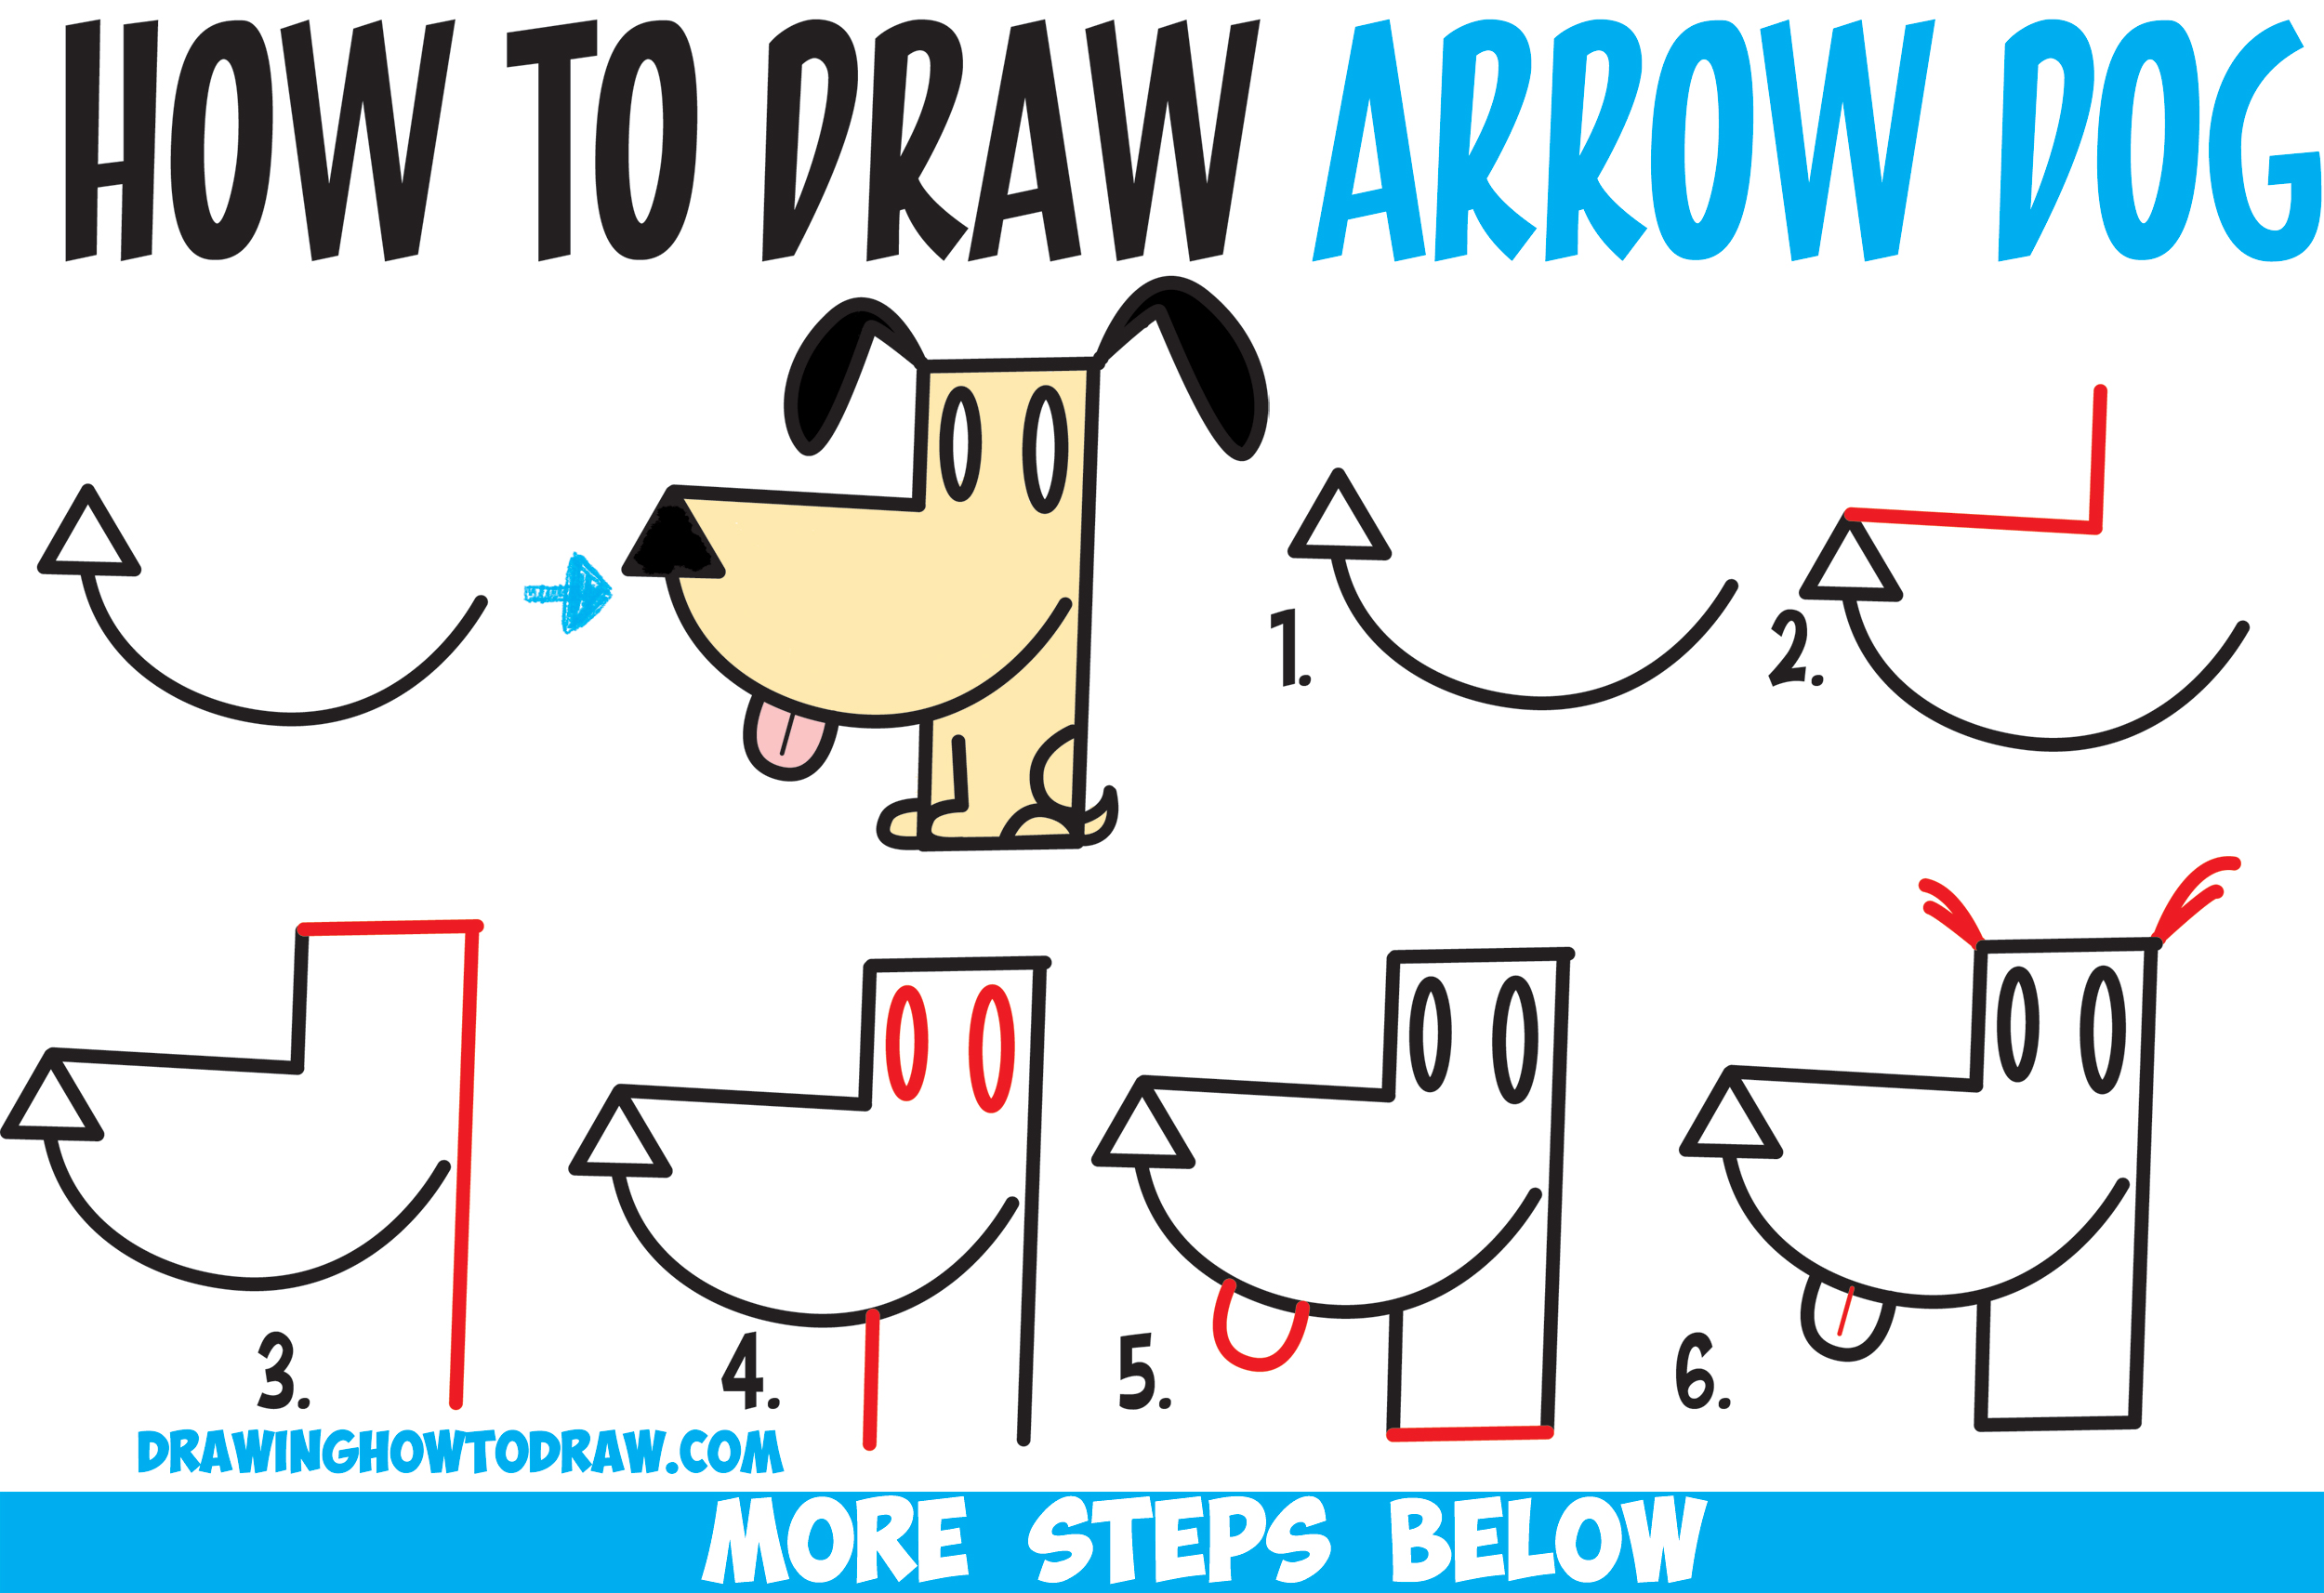 How to draw a cartoon dog from an arrow shape easy step by step how to draw a cartoon dog from an arrow shape easy step by step drawing biocorpaavc Choice Image